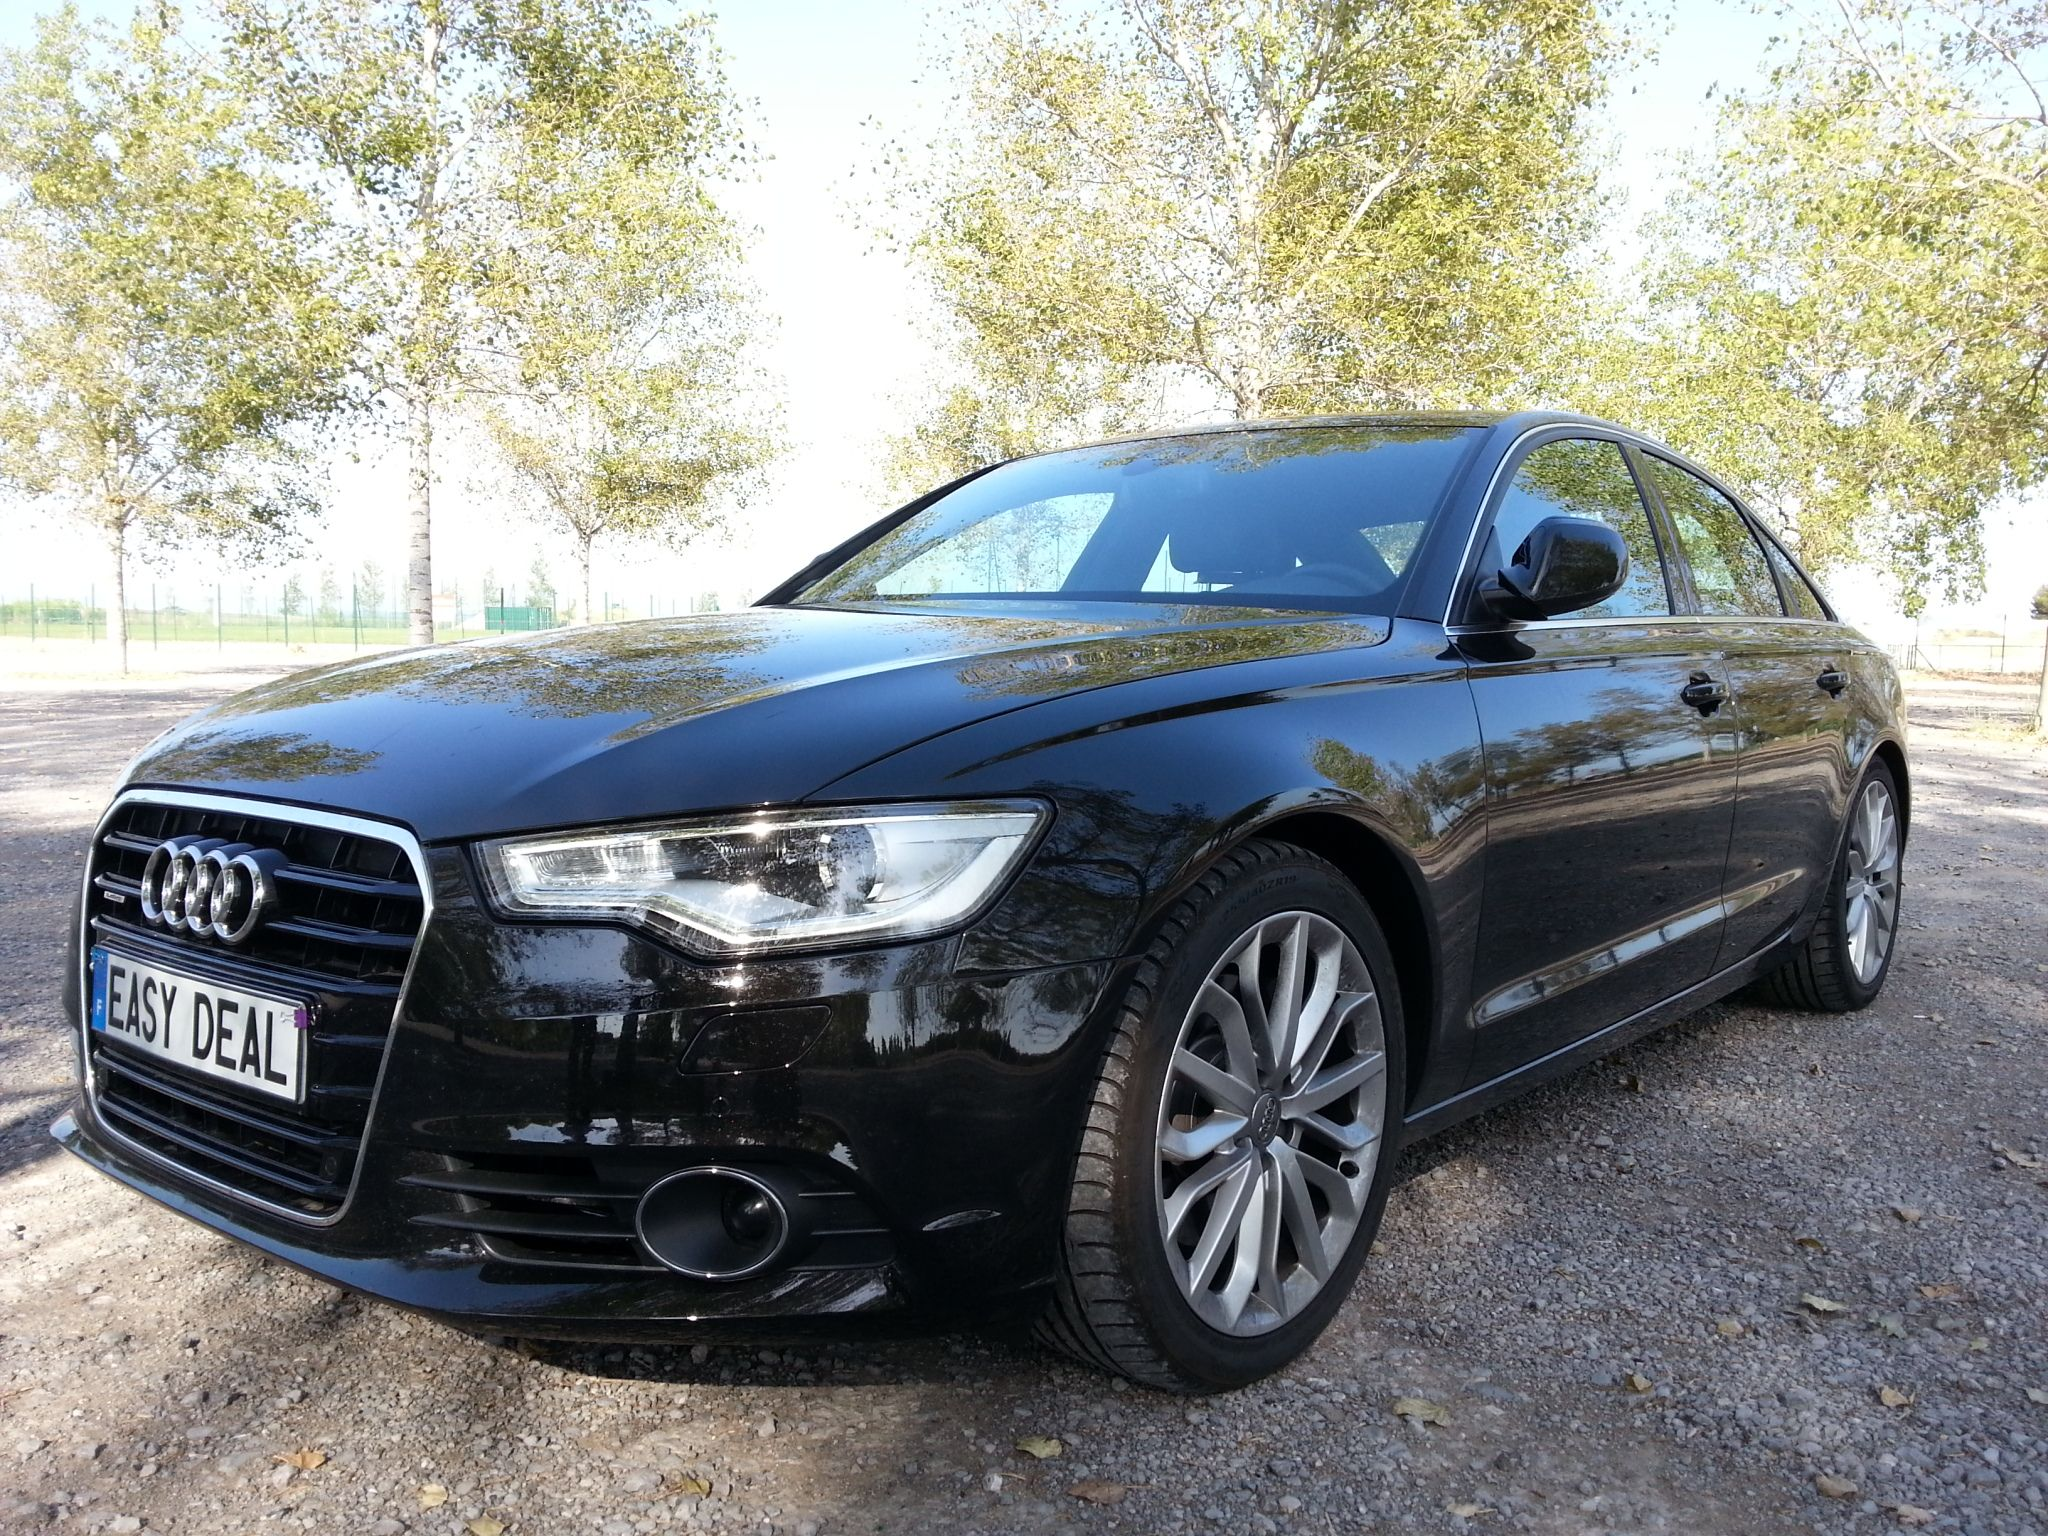 Audi A6 3 0 V6 Tdi Ambition Luxe Quattro S Tronic Audi Voiture